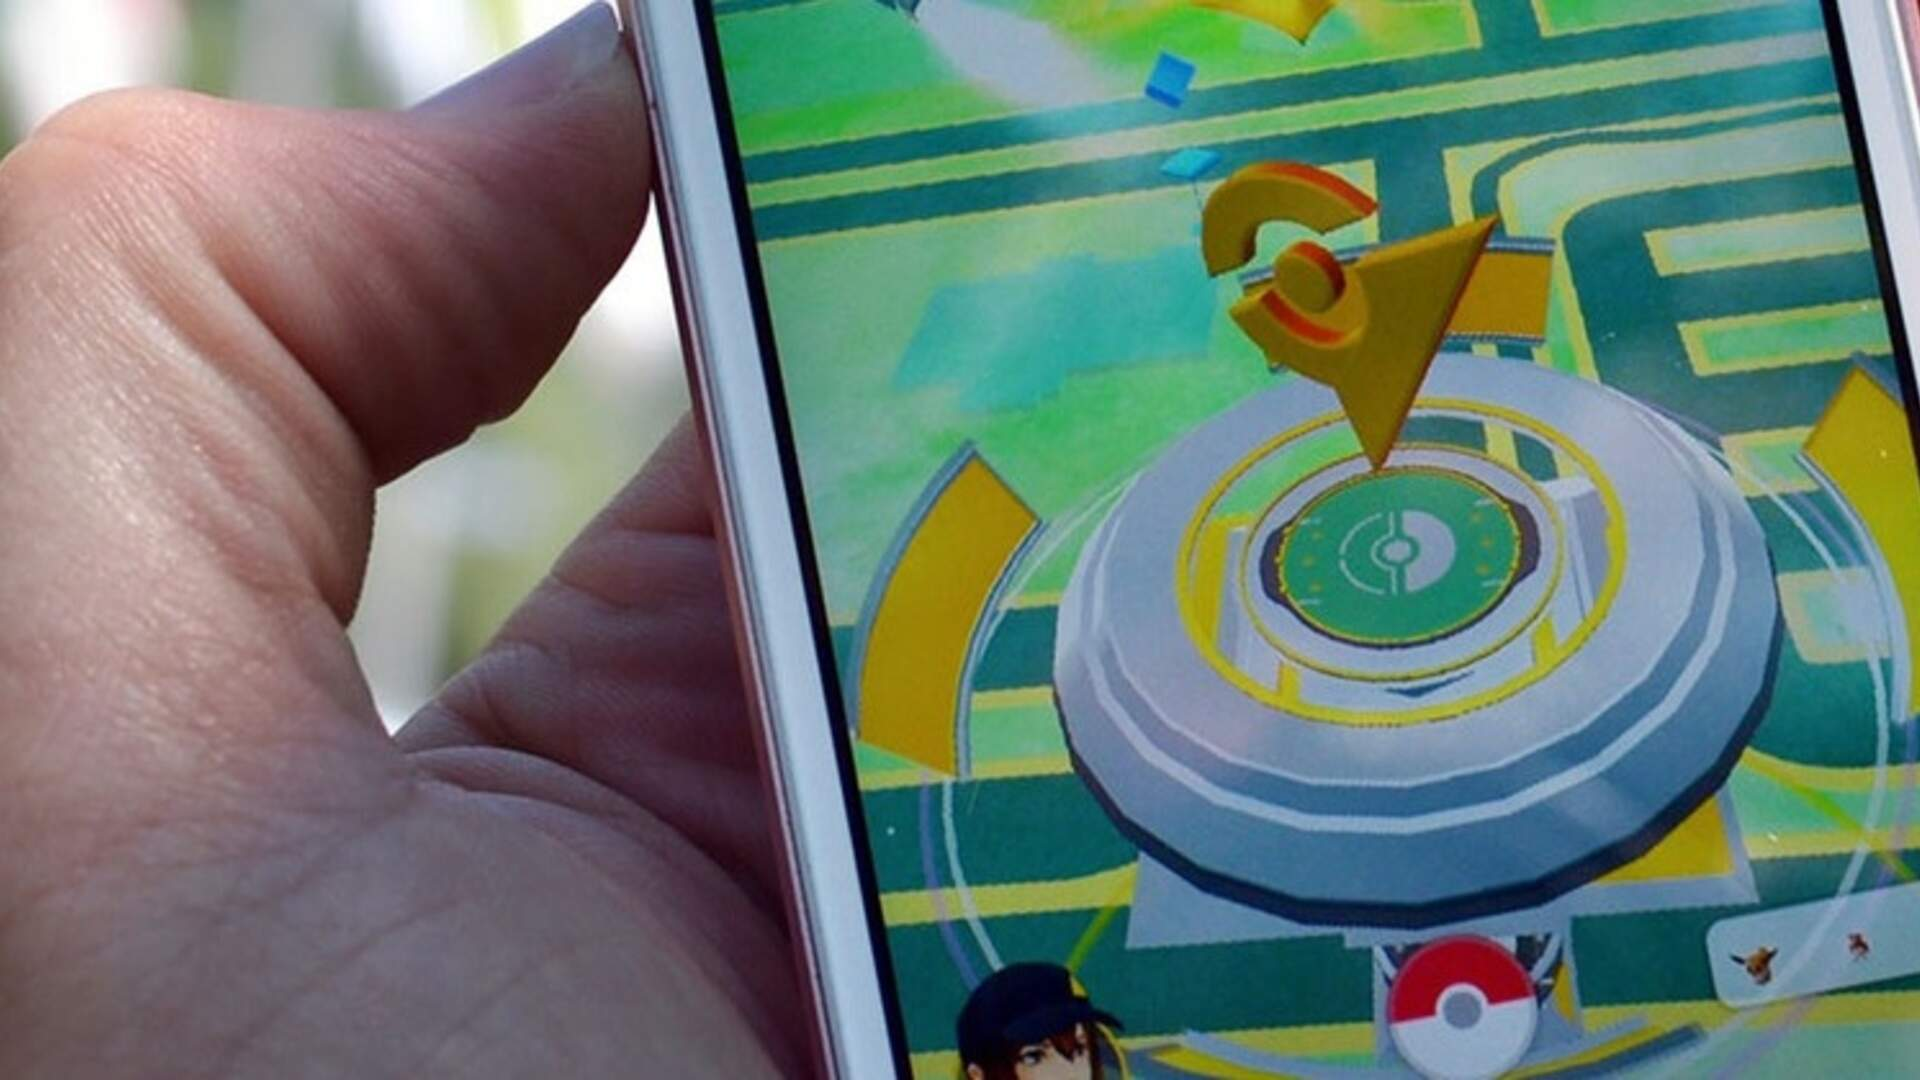 Russia Apparently Tried to Use Pokemon Go for Propaganda...Poorly